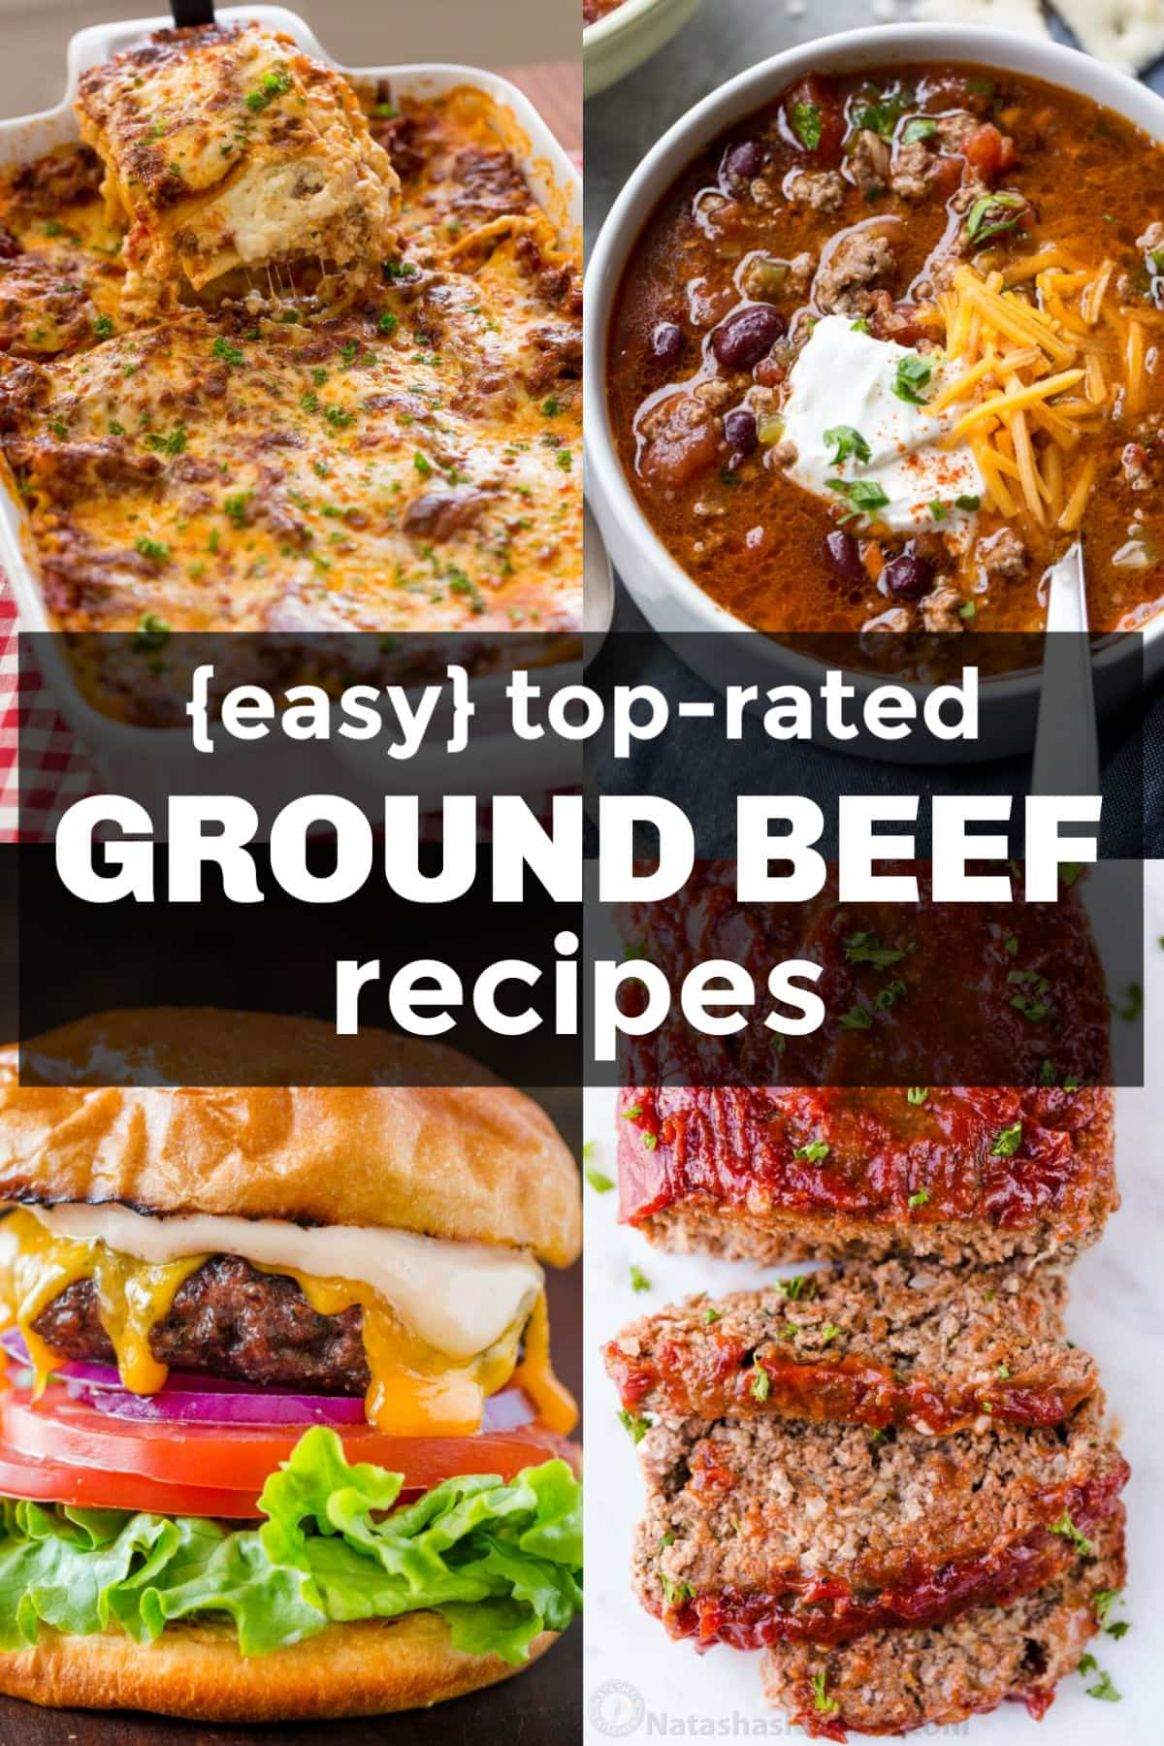 How to Cook Ground Beef for Ground Beef Recipes - Simple Quick Recipes For Dinner